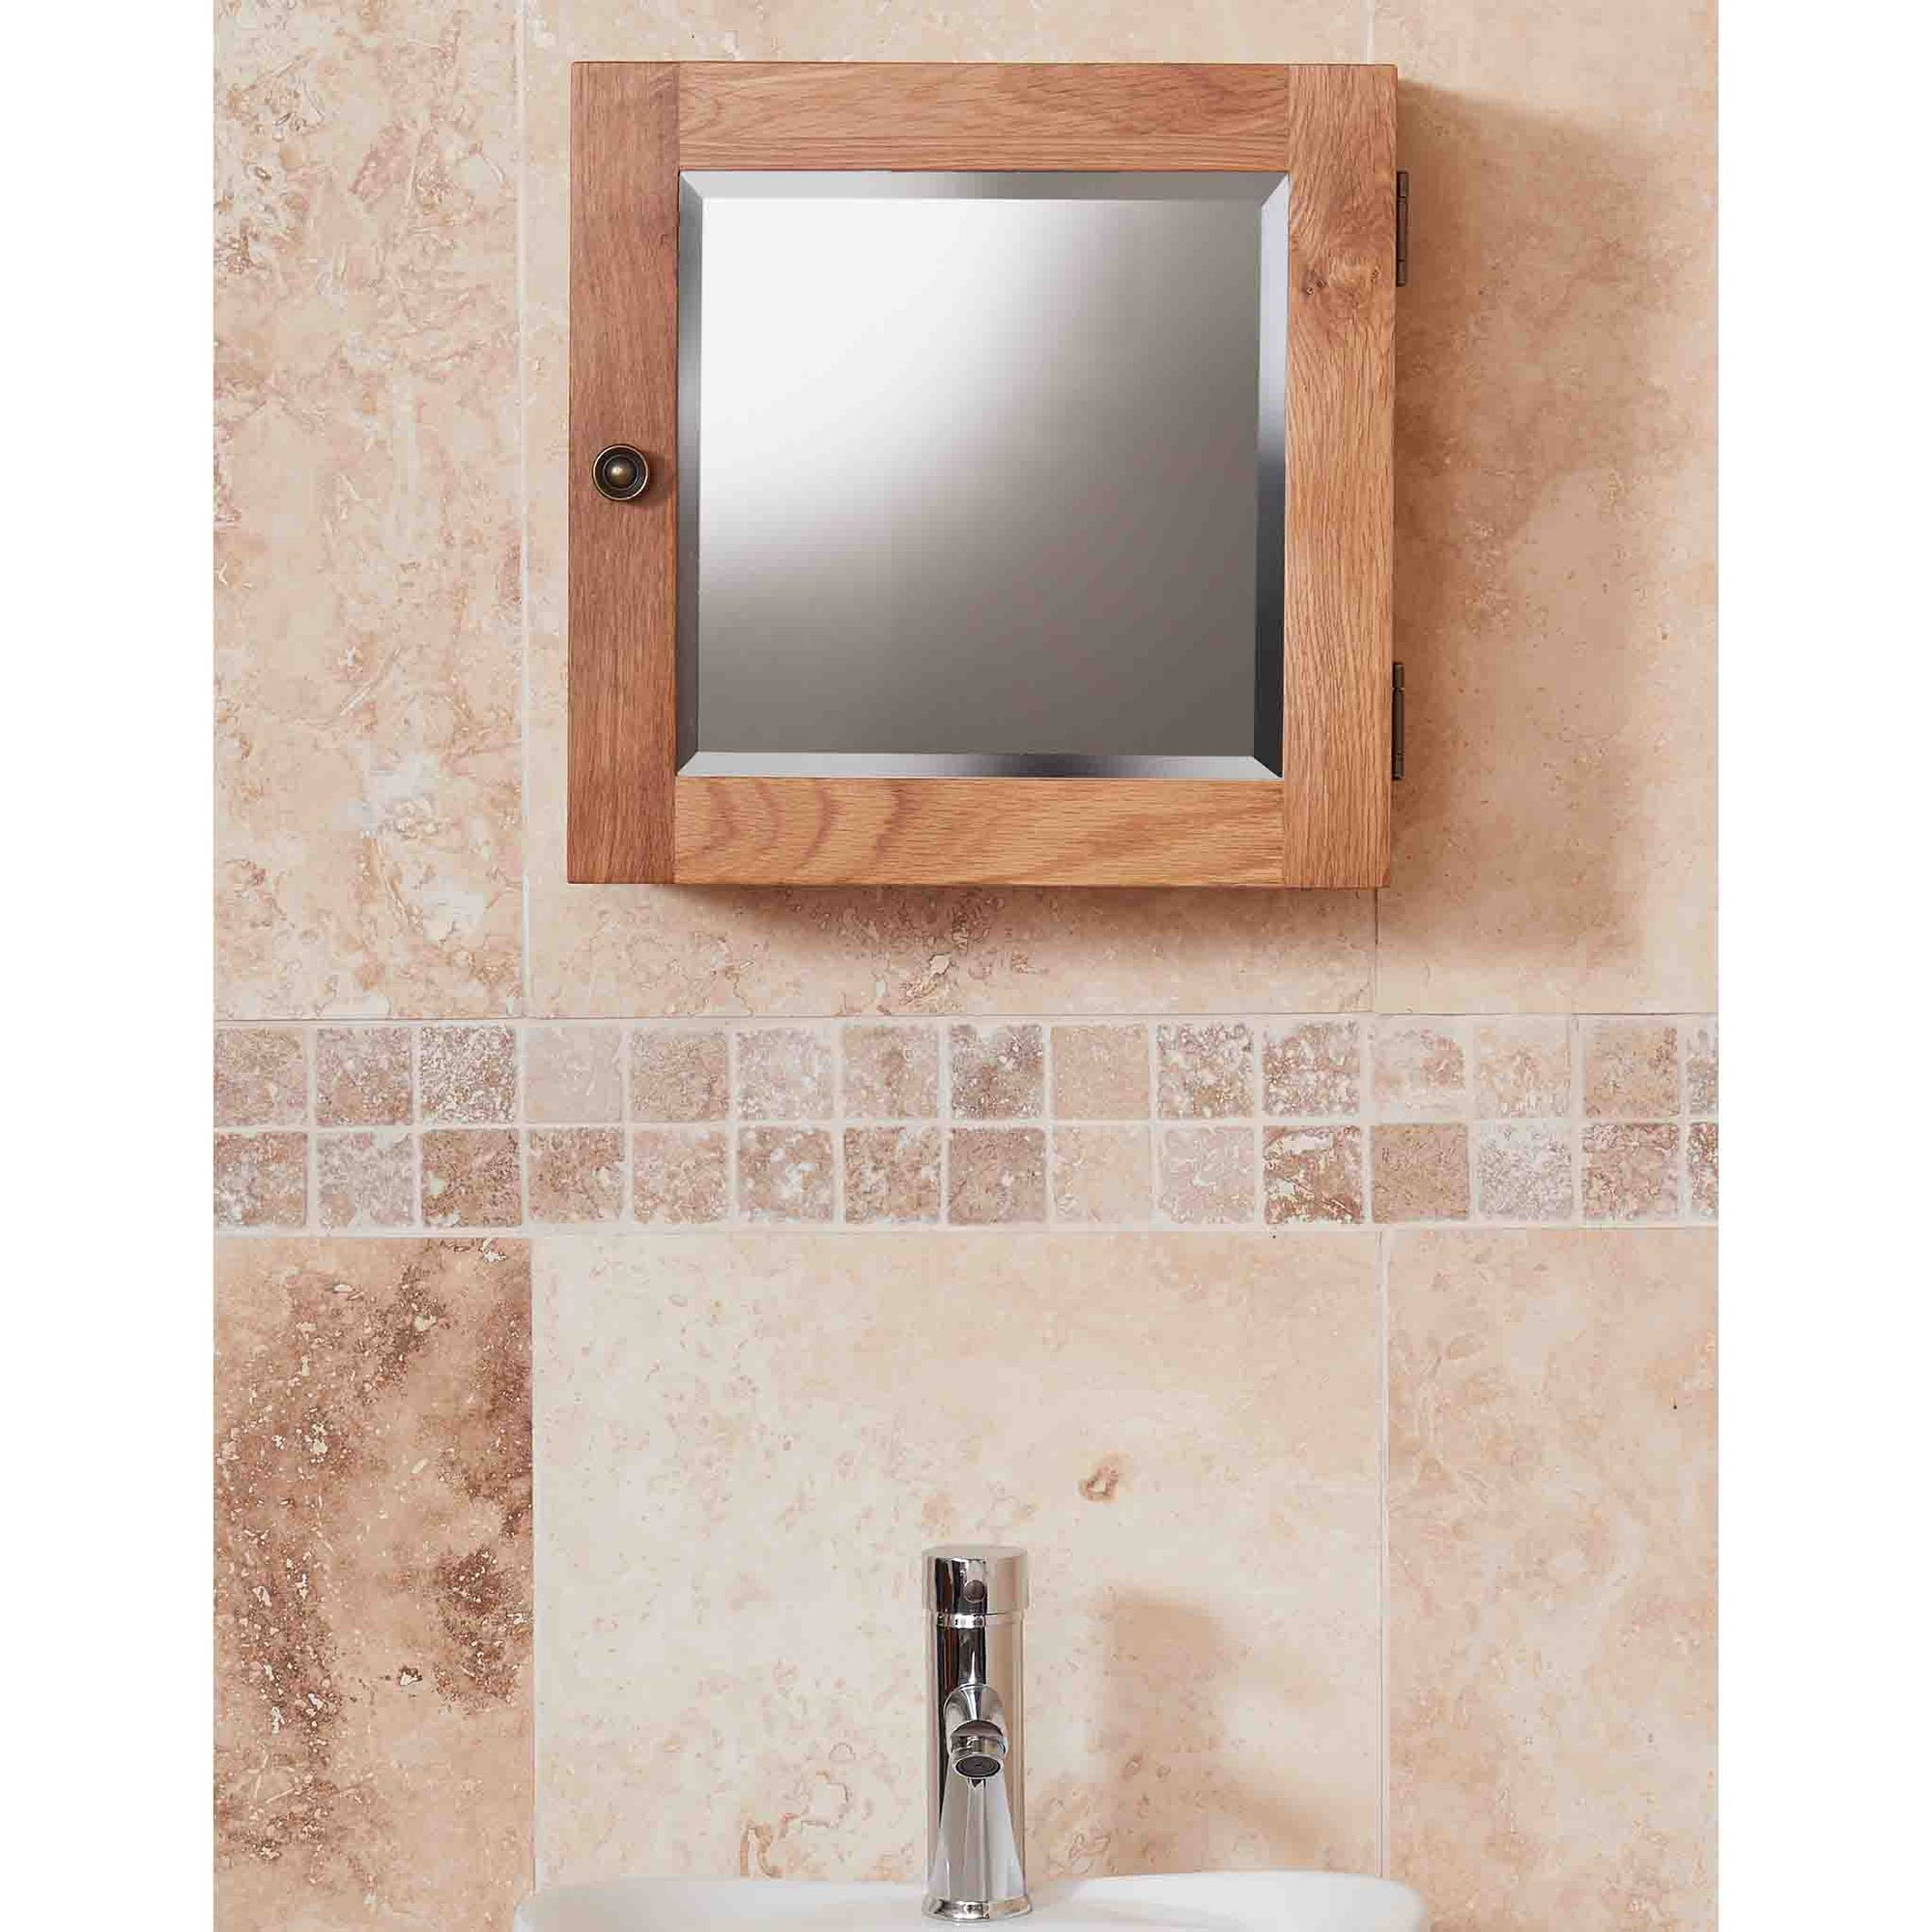 Mobel Bathroom 100% Solid Oak Mirrored Single Door Wall Cabinet